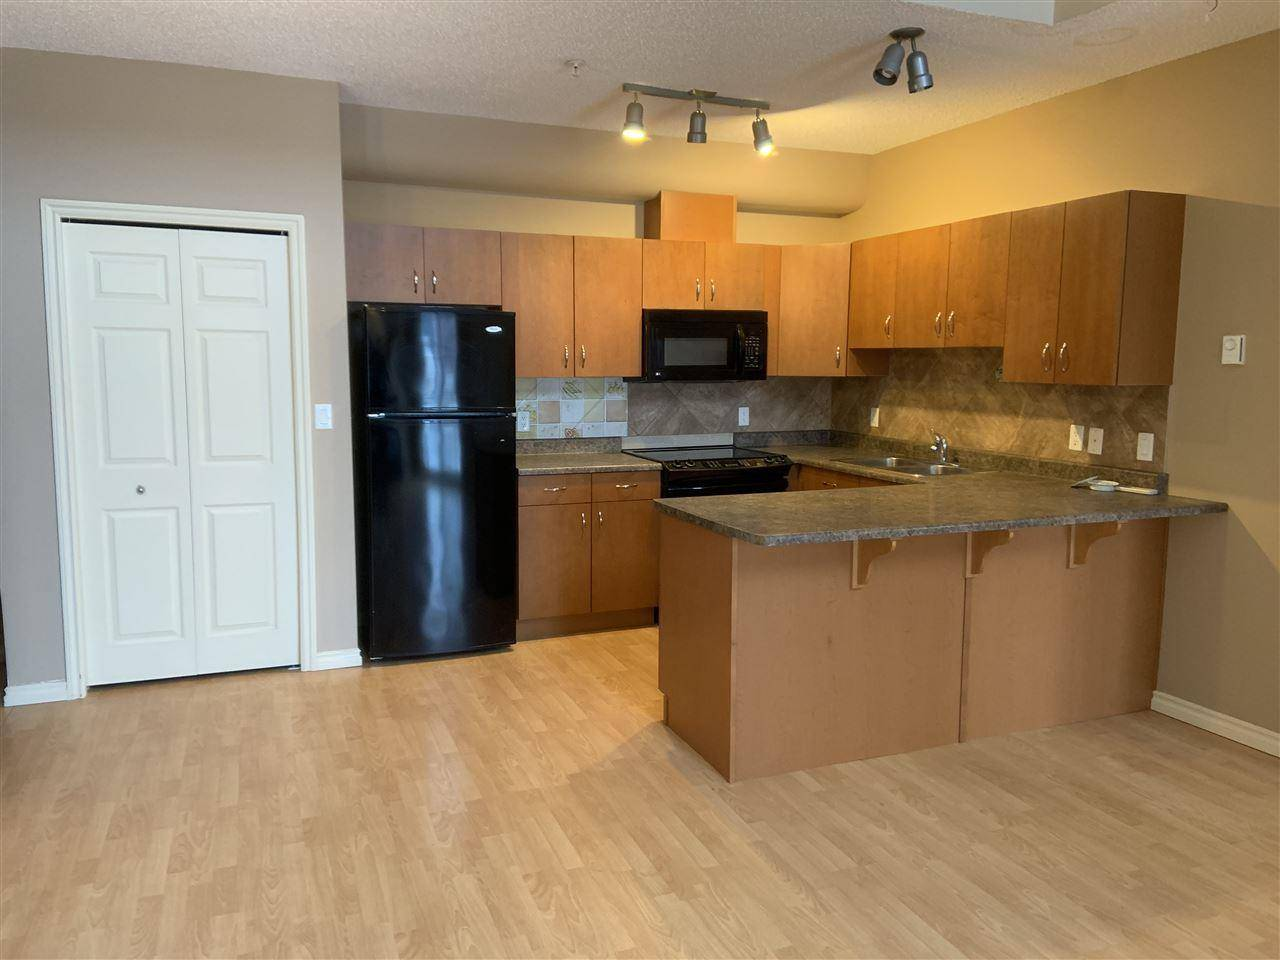 Condo for sale at 10235 112 St Nw Unit 612 Edmonton Alberta - MLS: E4139122